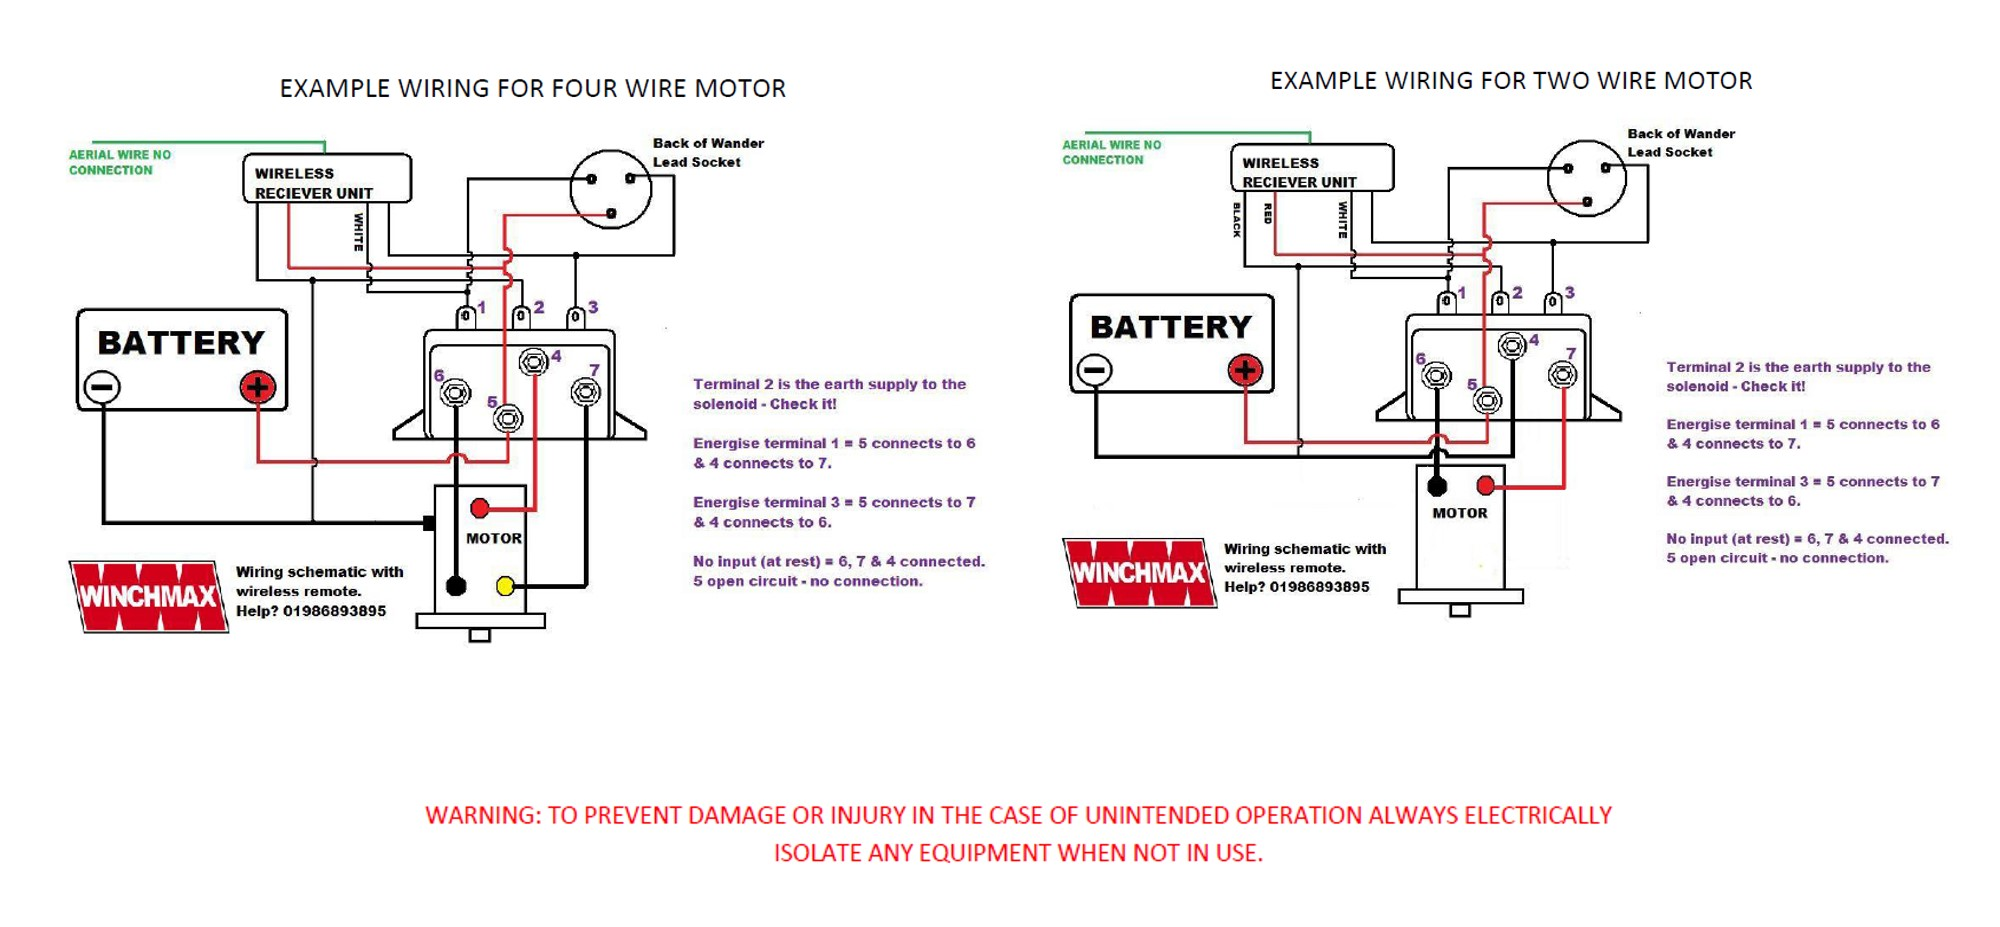 Ge Motor Wiring Diagram 7 Wire Electrical Diagrams Jkp1 Oven Trusted Electric